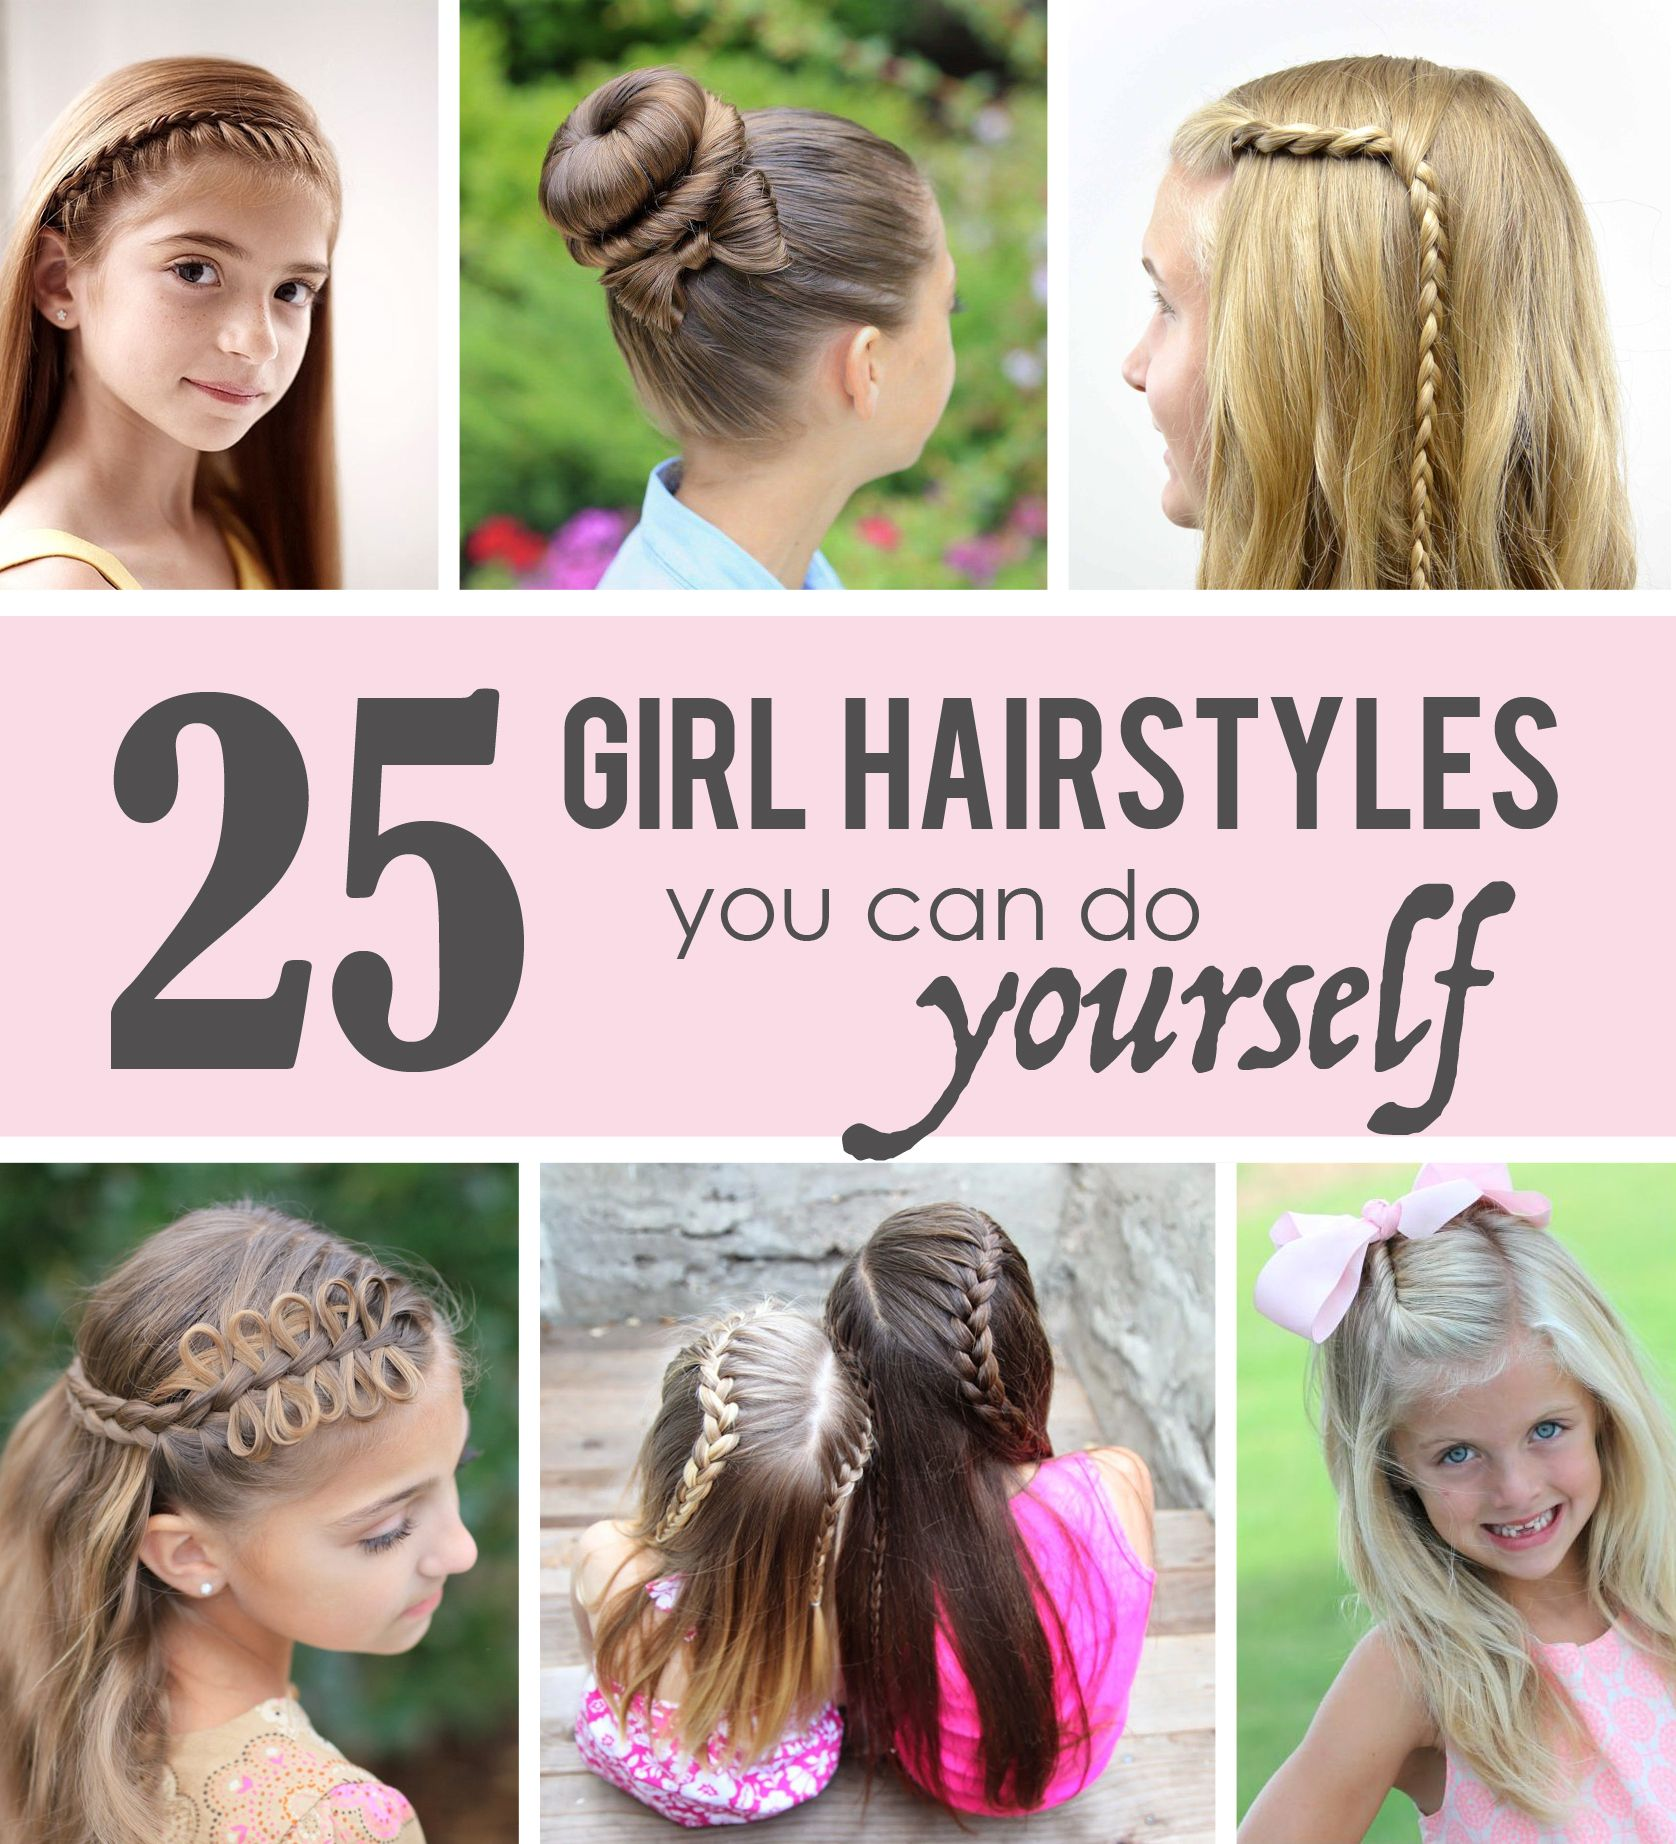 25 girl hairstylesyou can do yourself | via make it and love it